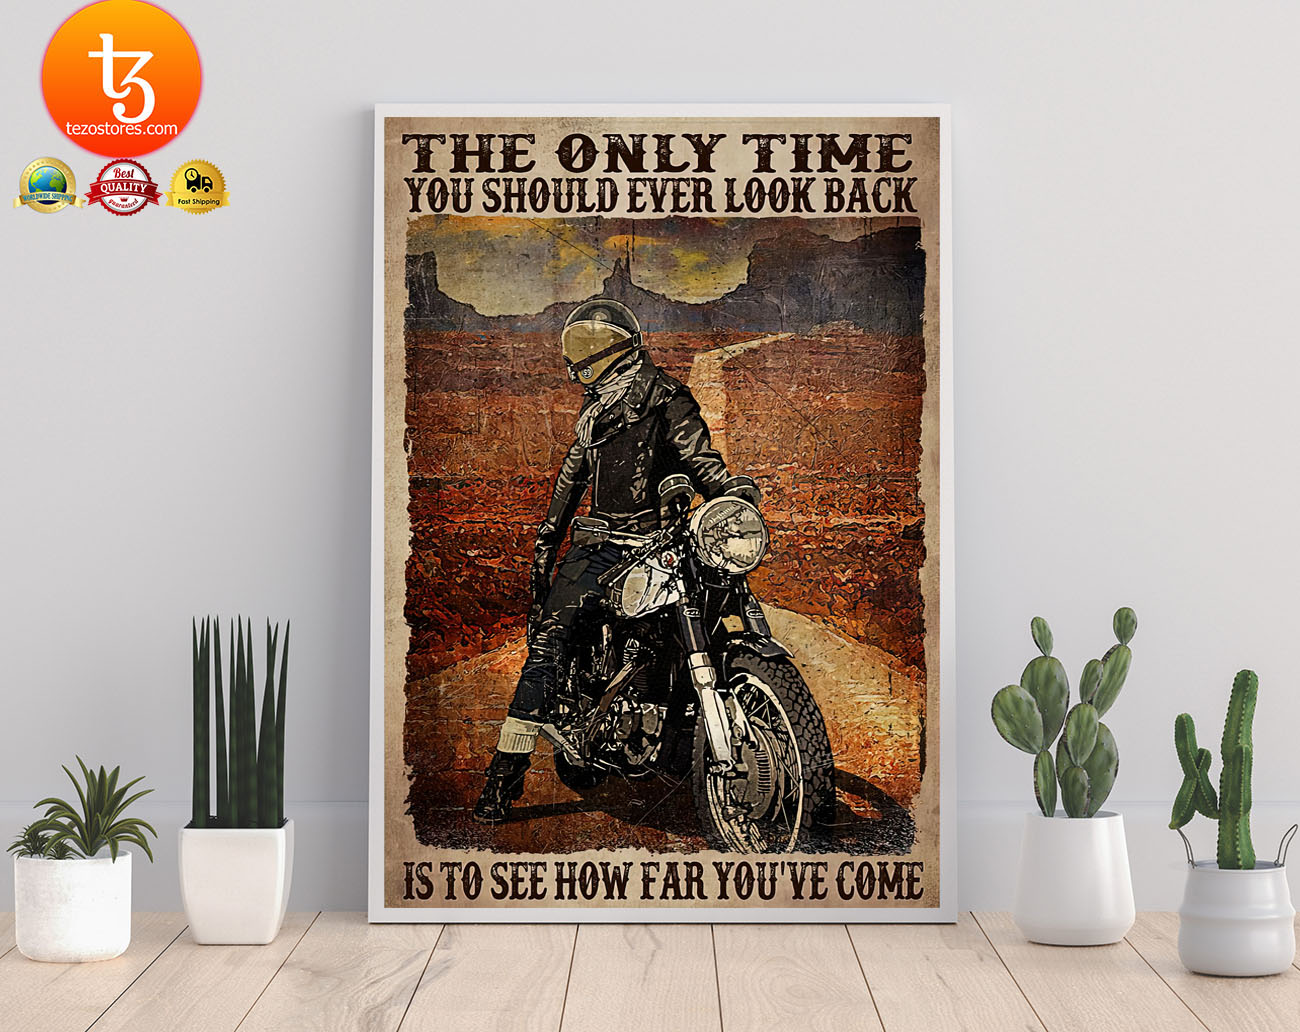 Motorcycle The only time you should ever look back is to see how far you've come poster 1